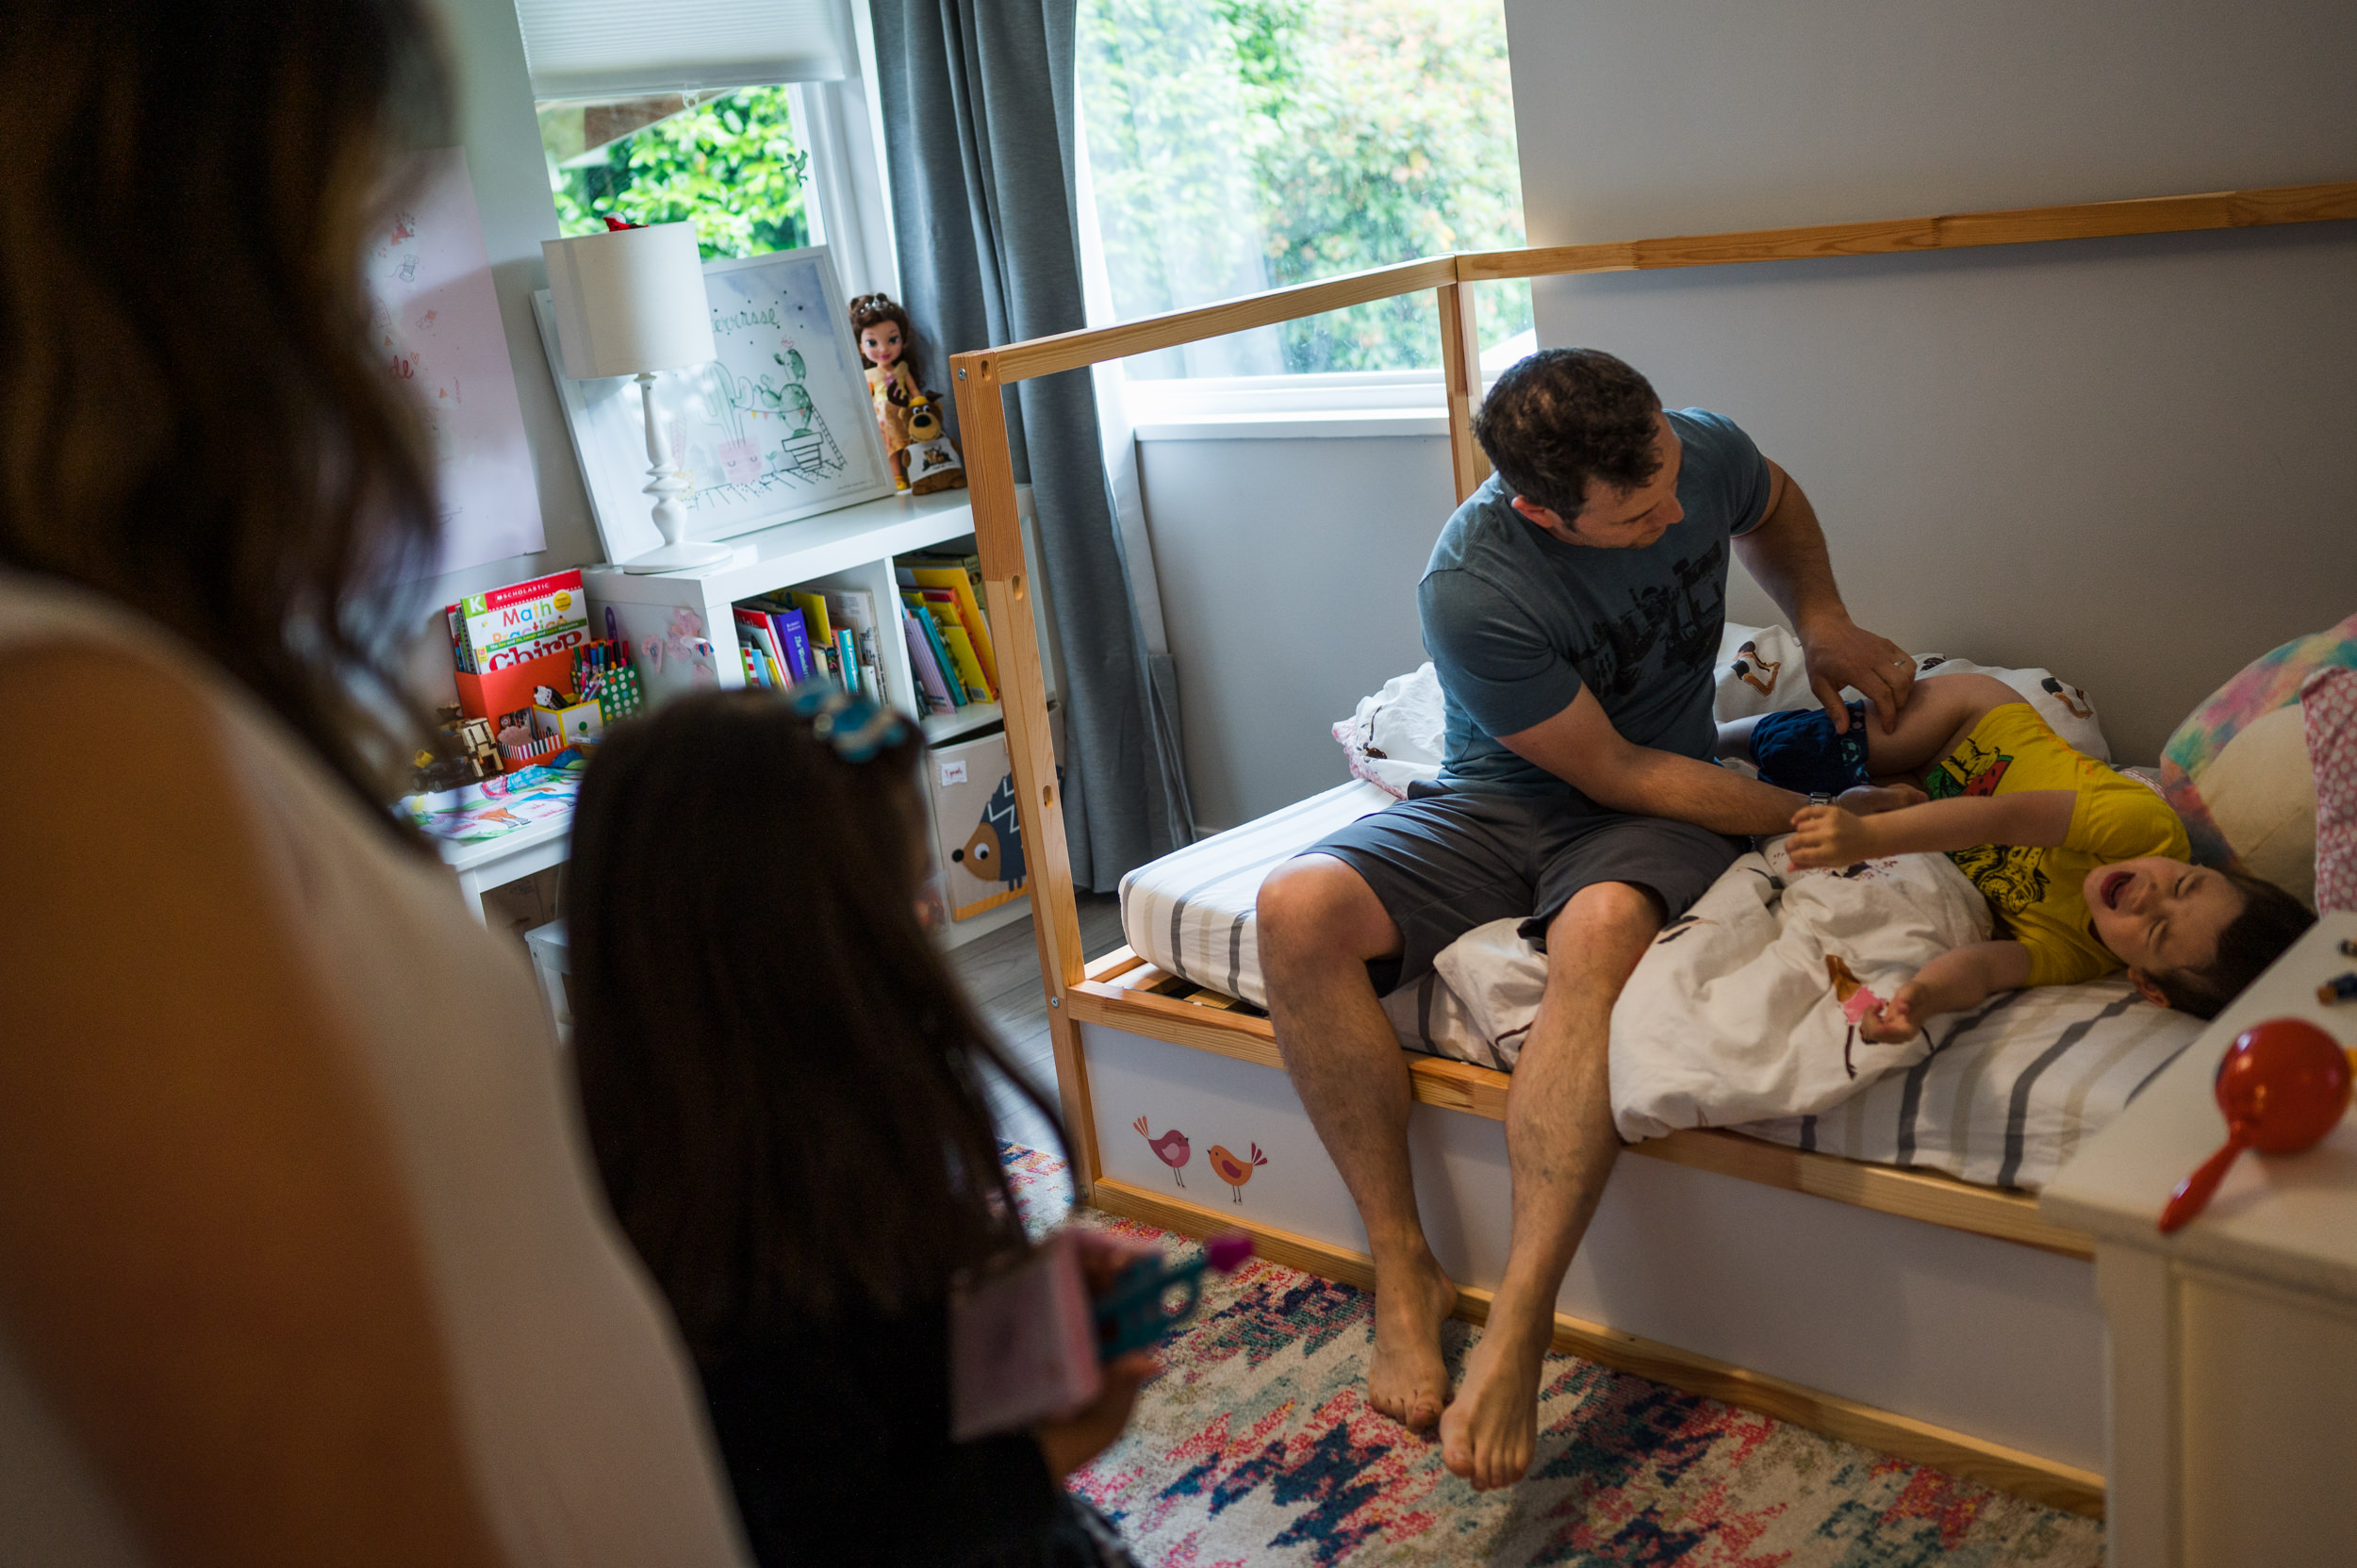 dad tries to dress his son while he is wriggling on his big sister's bed.